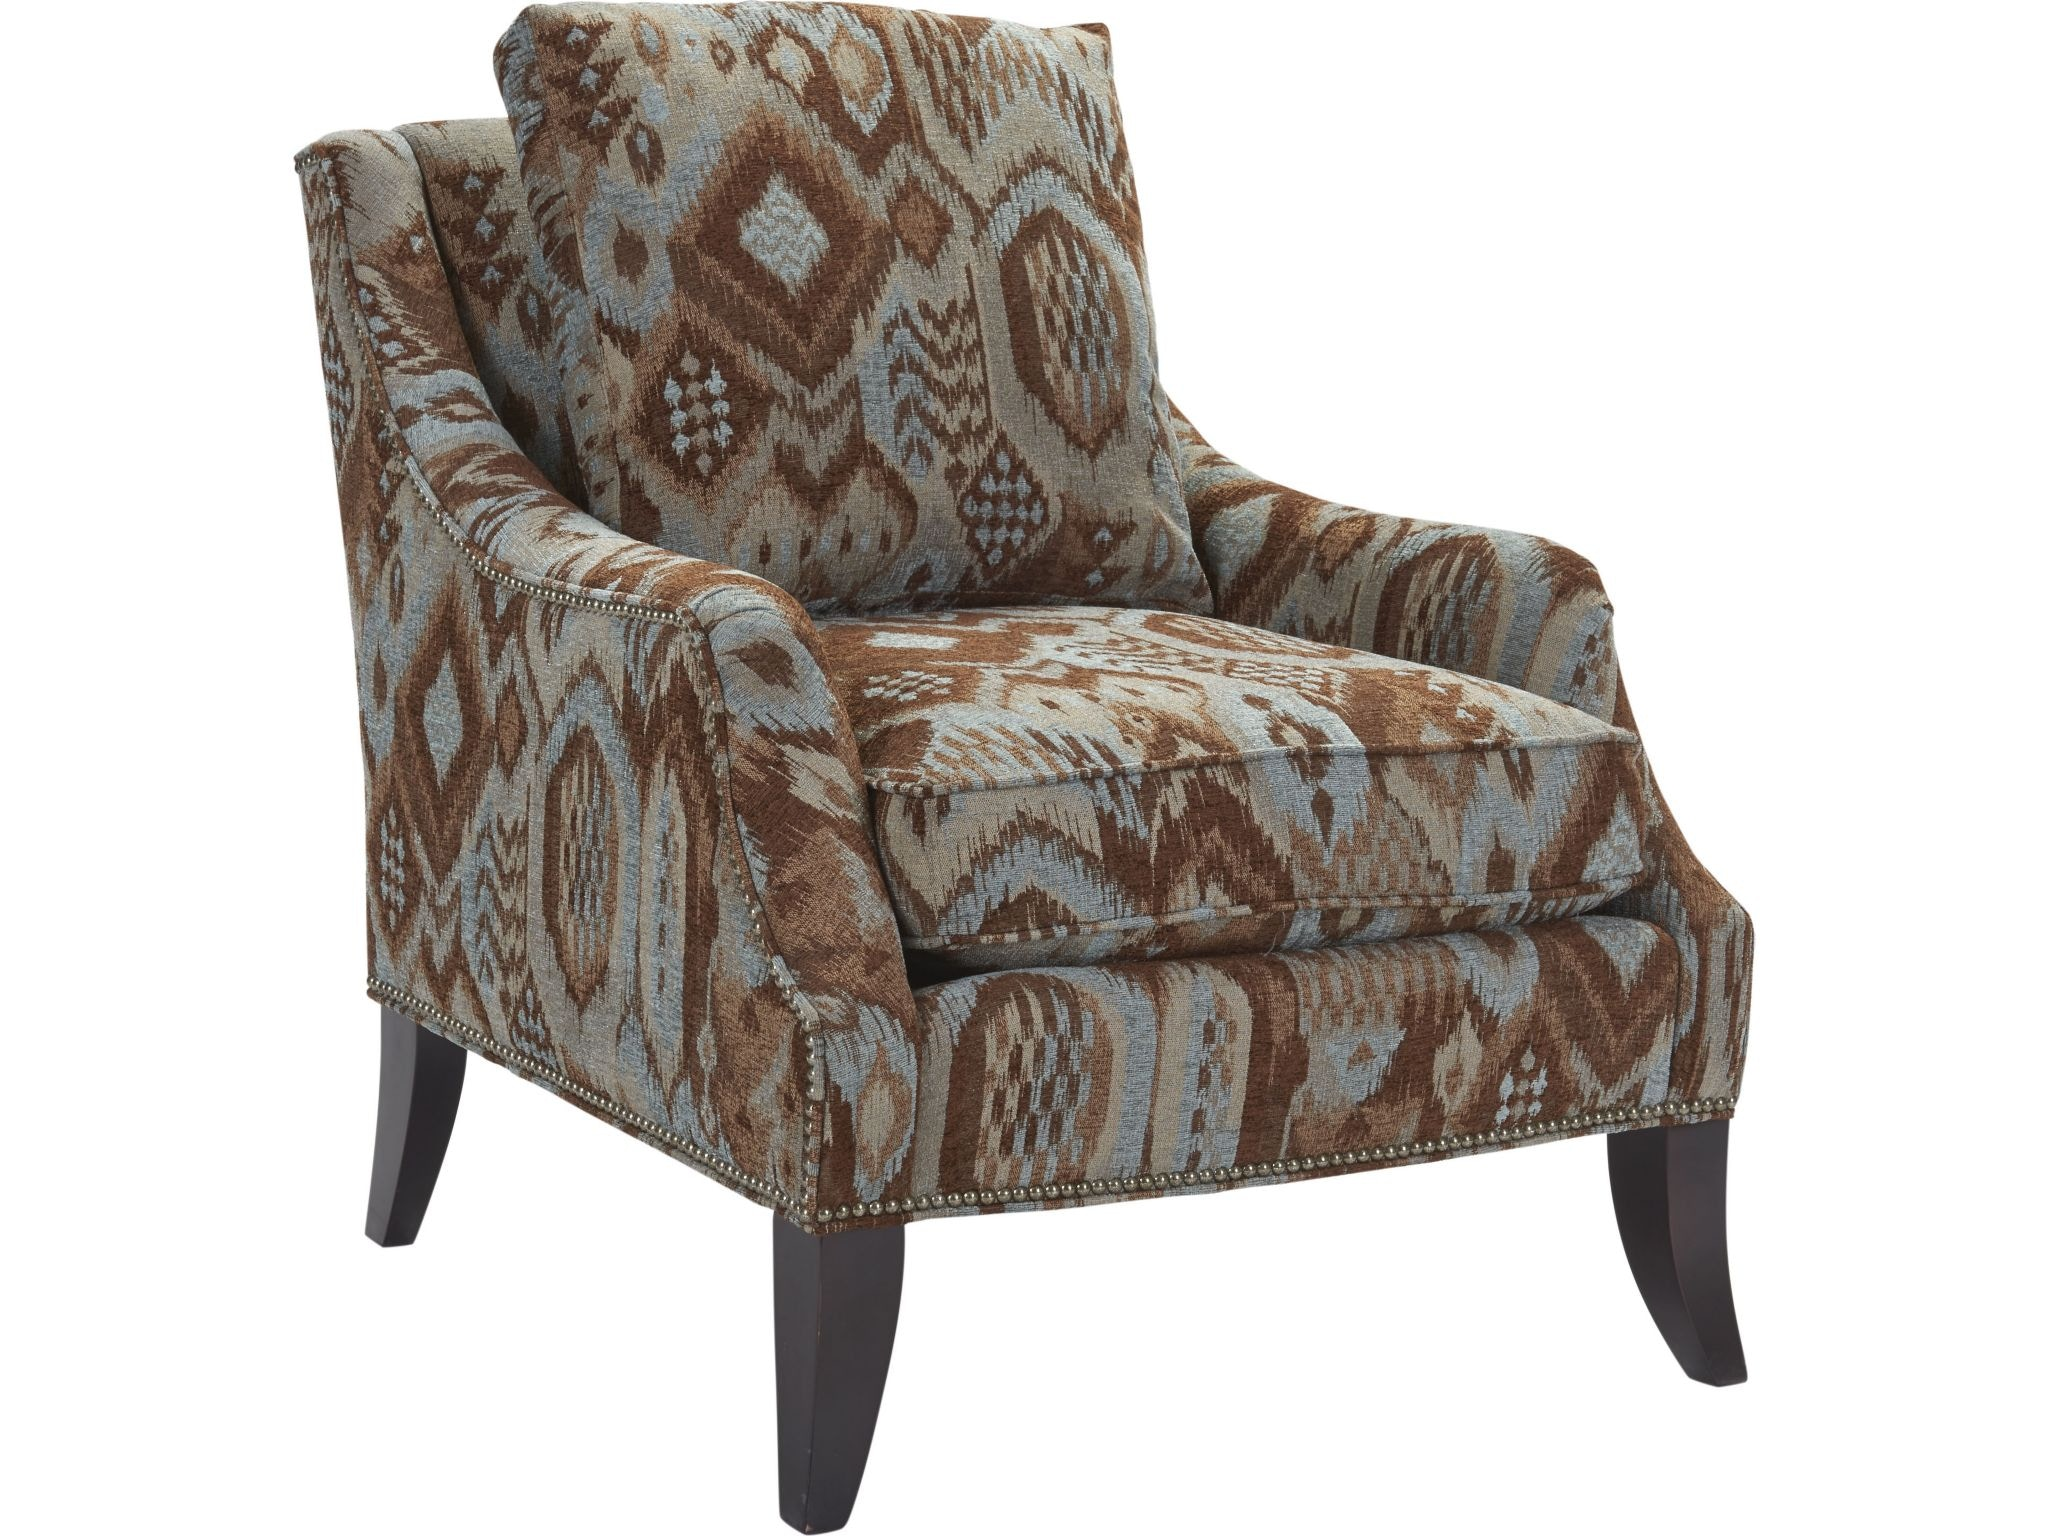 Thomasville Teddy Chair 2504 15